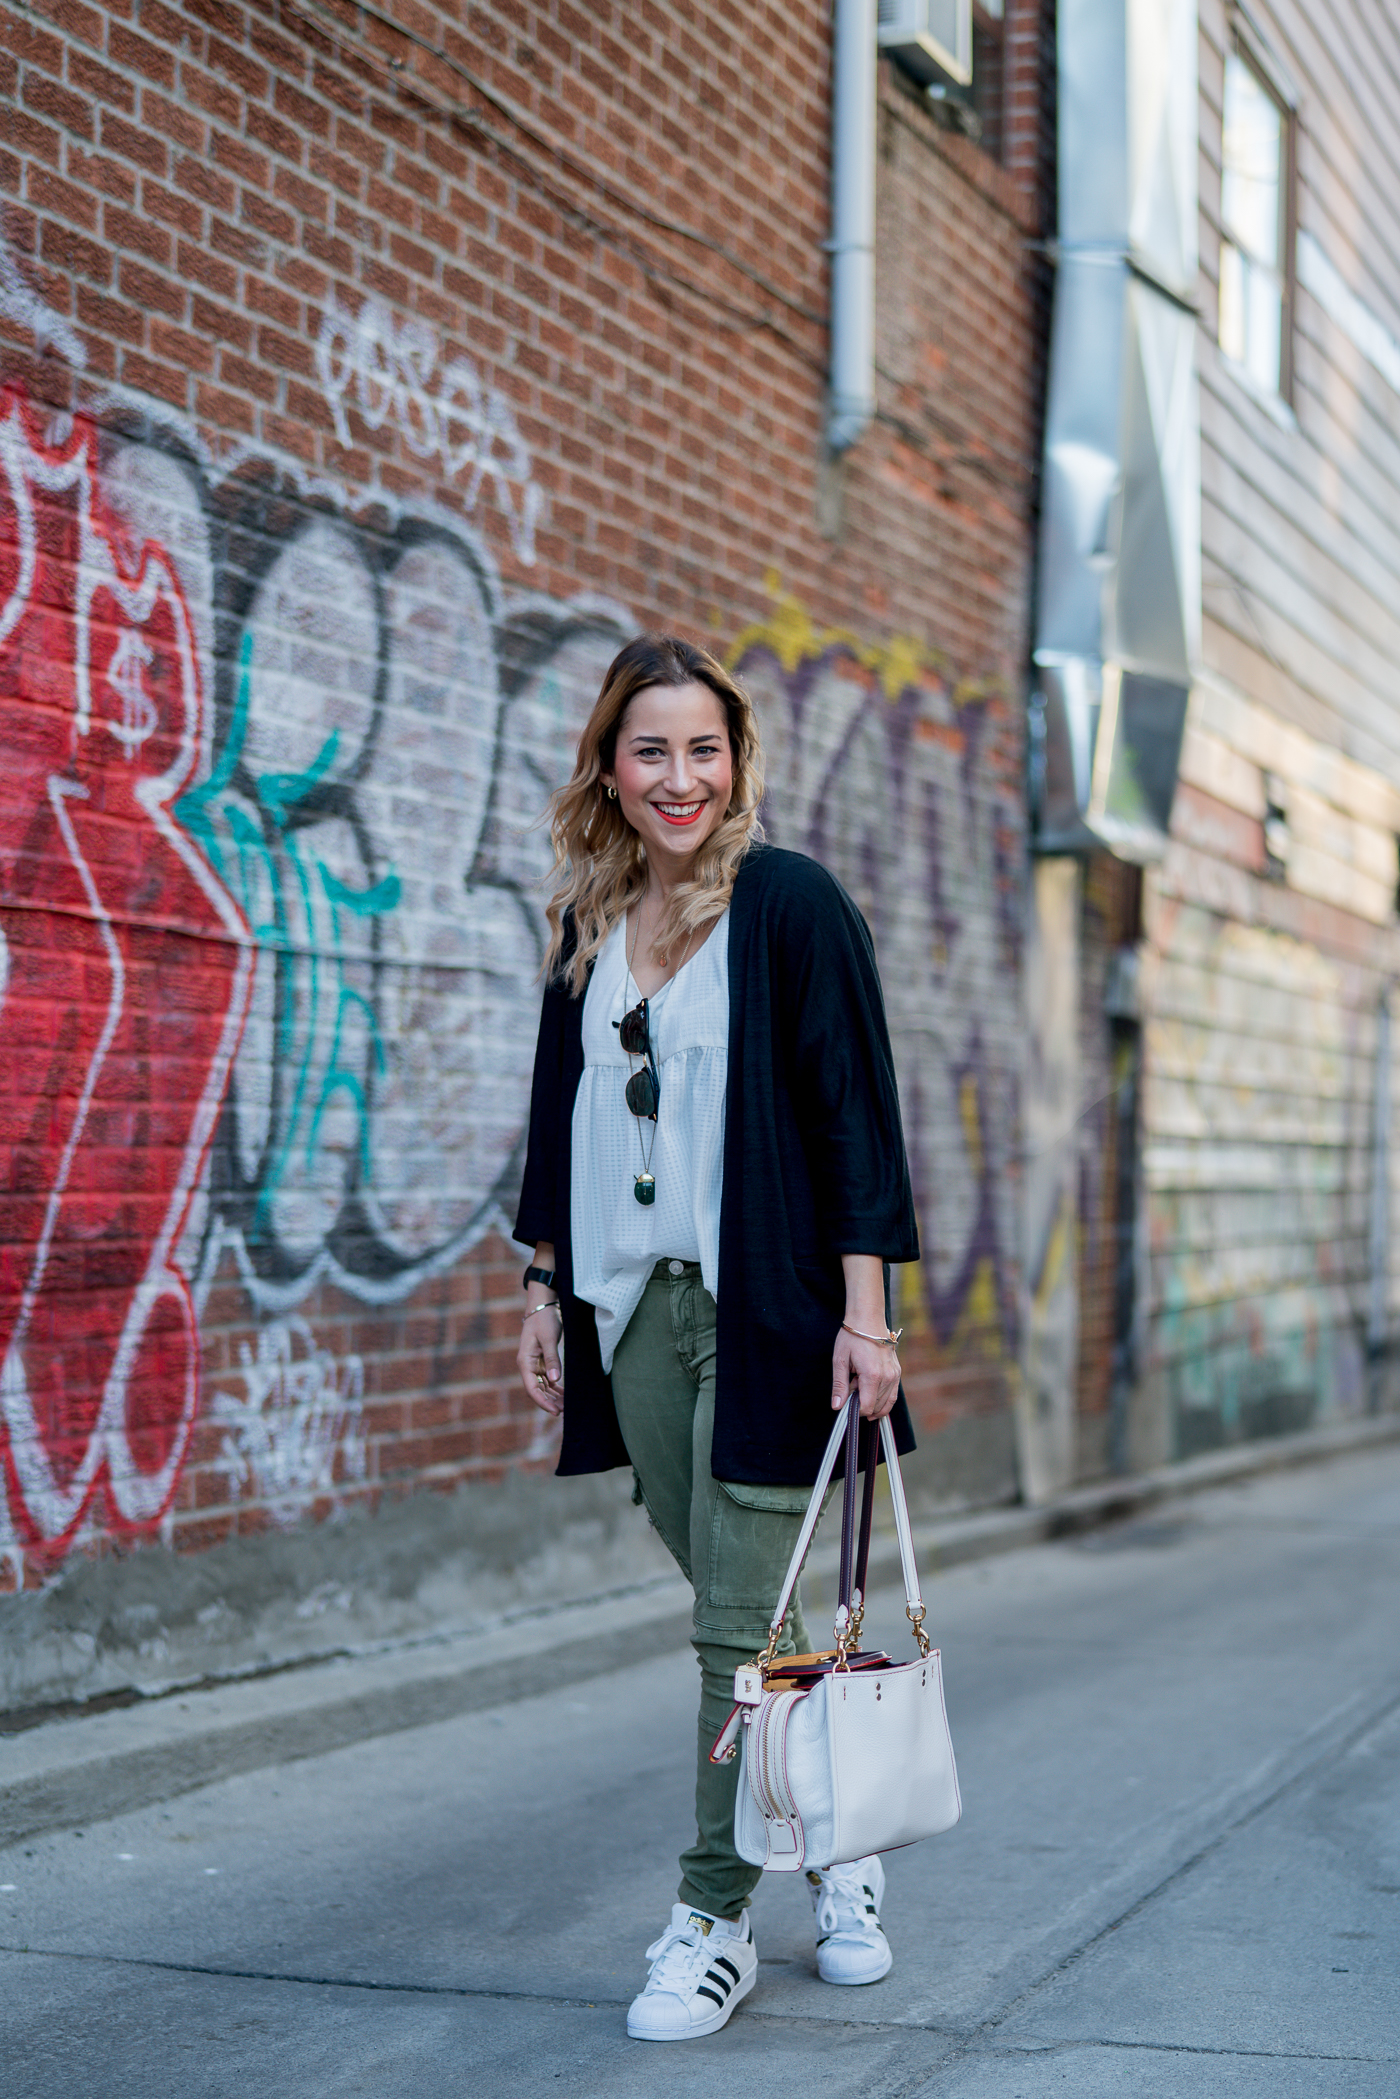 Jackie Goldhar is a Toronto-based lifestyle blogger, wearing a black Zlara cardigan from Aritzia with skinny cargo pants from Zara and Adidas Superstar sneakers